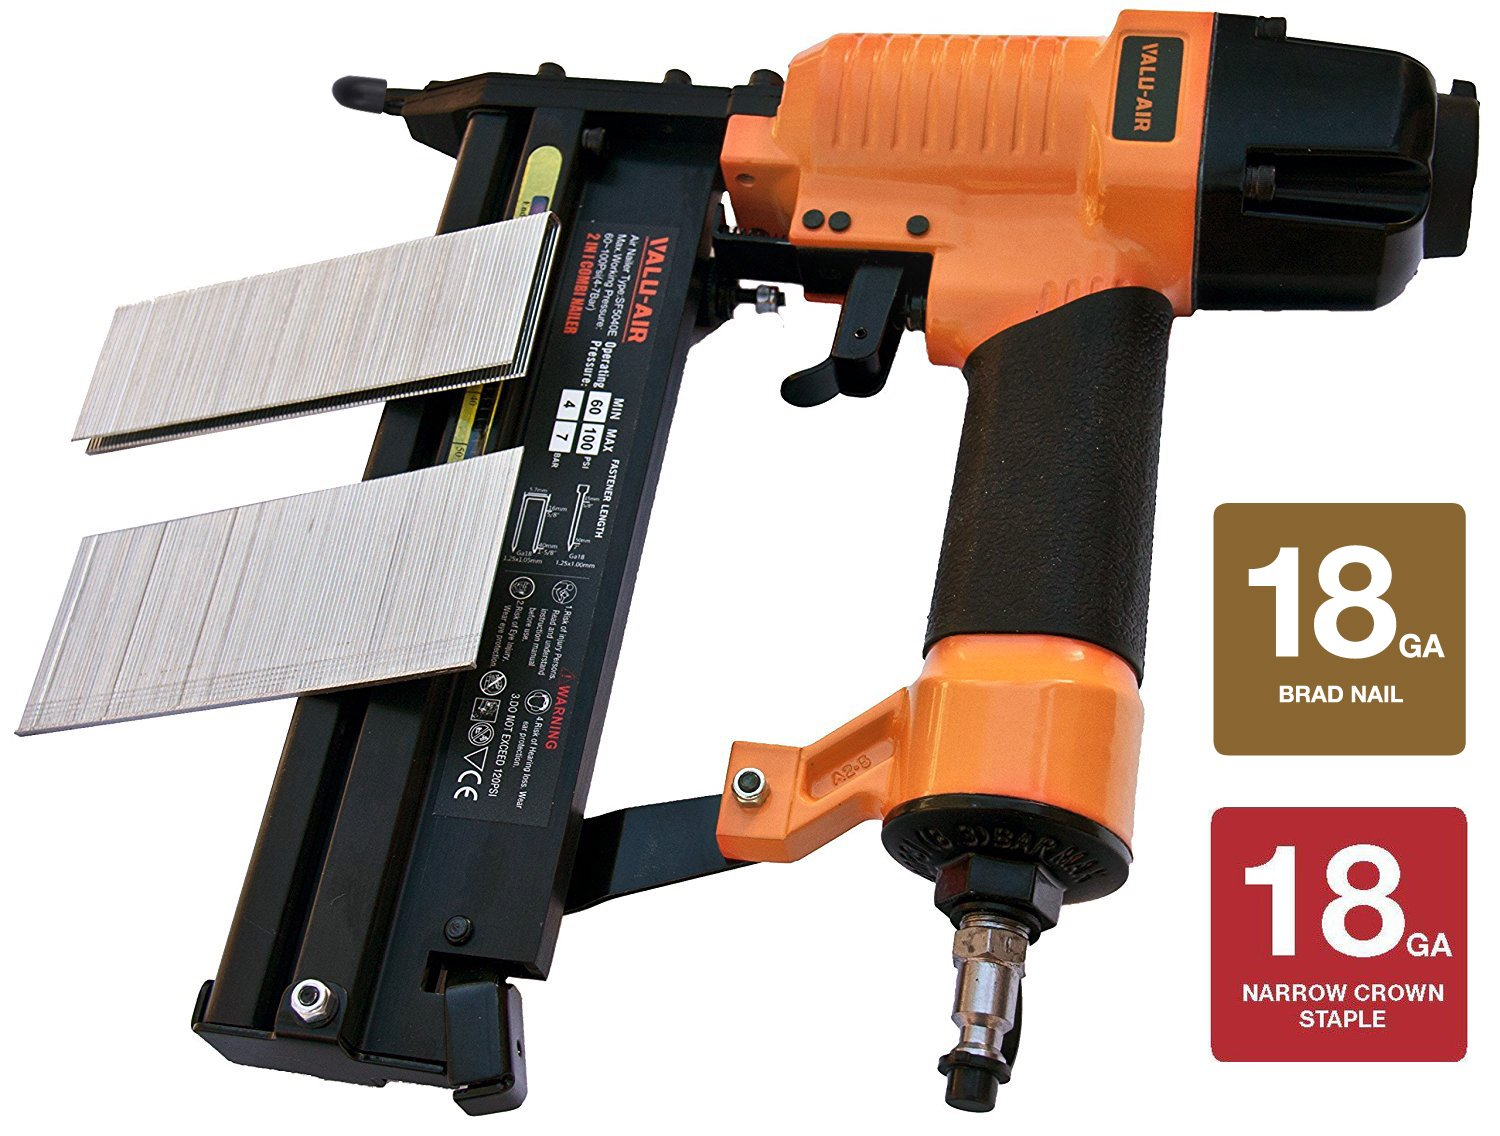 Valu-Air SF5040 2'' 18 Gauge 2 in 1 Brad Nailer and Stapler with Carrying Case